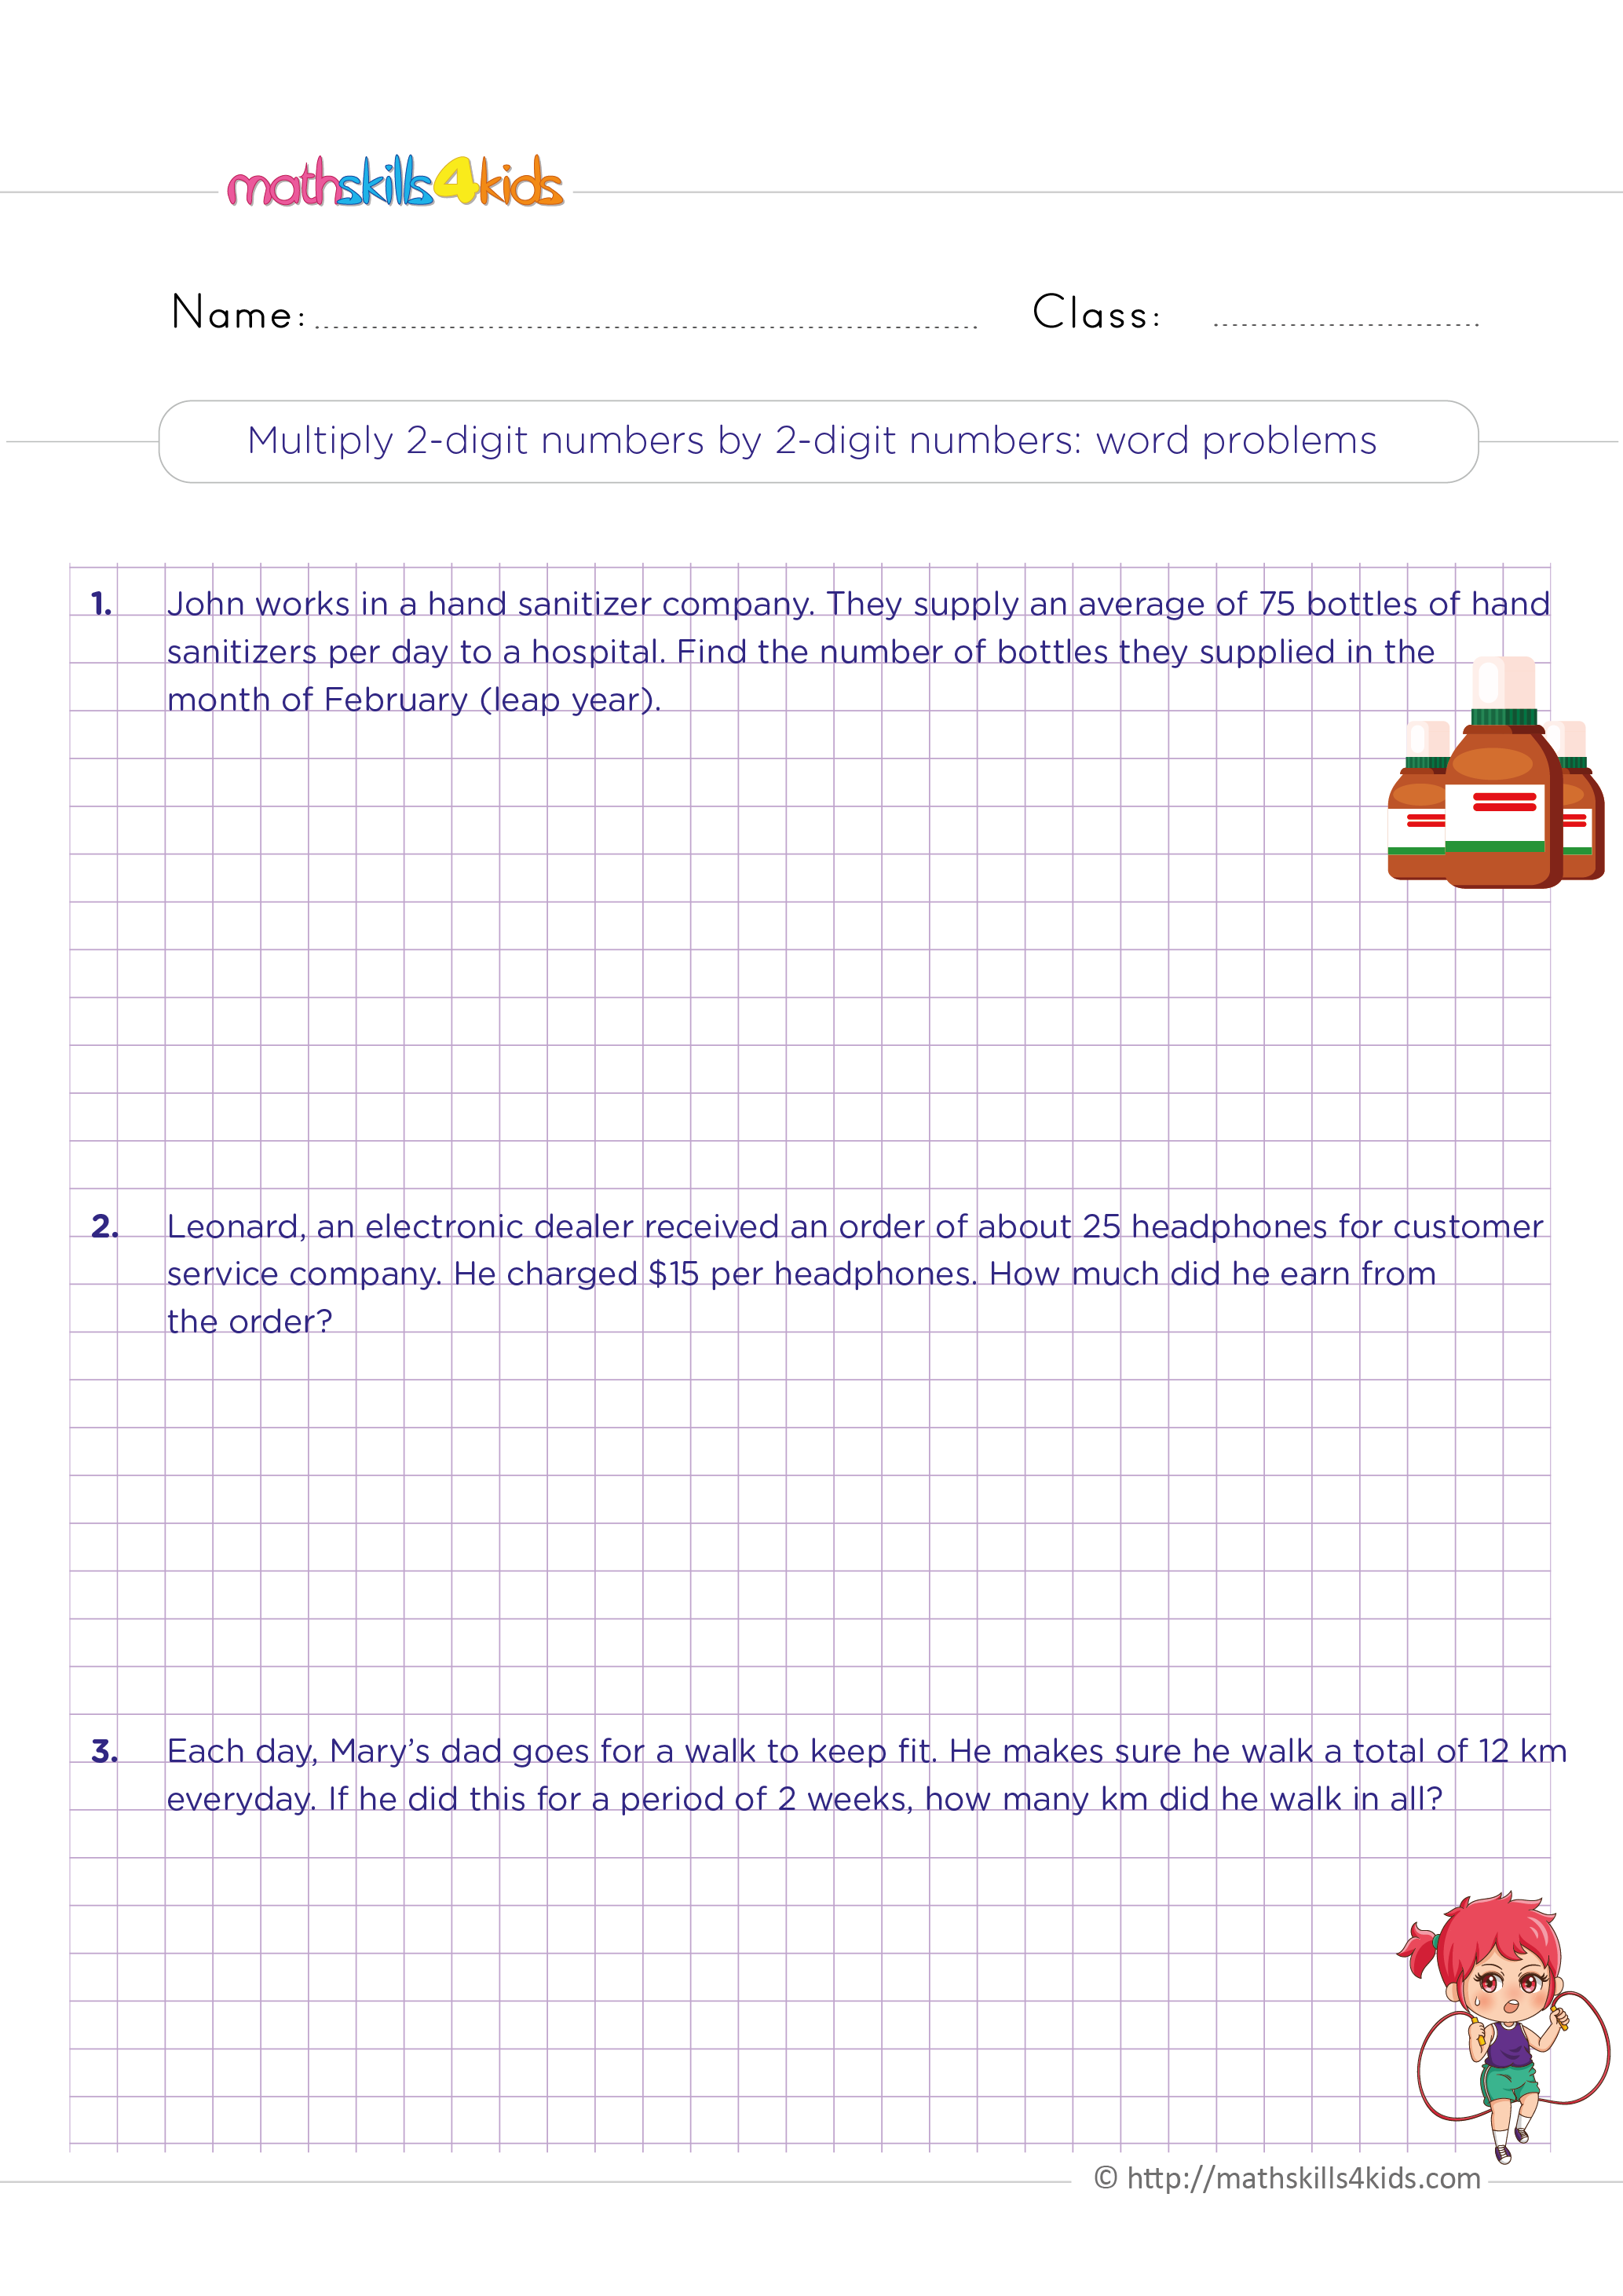 Multiplication Worksheets Grade 4 printable with answers - Multiplication of 2-digit by 2-digit numbers word problems